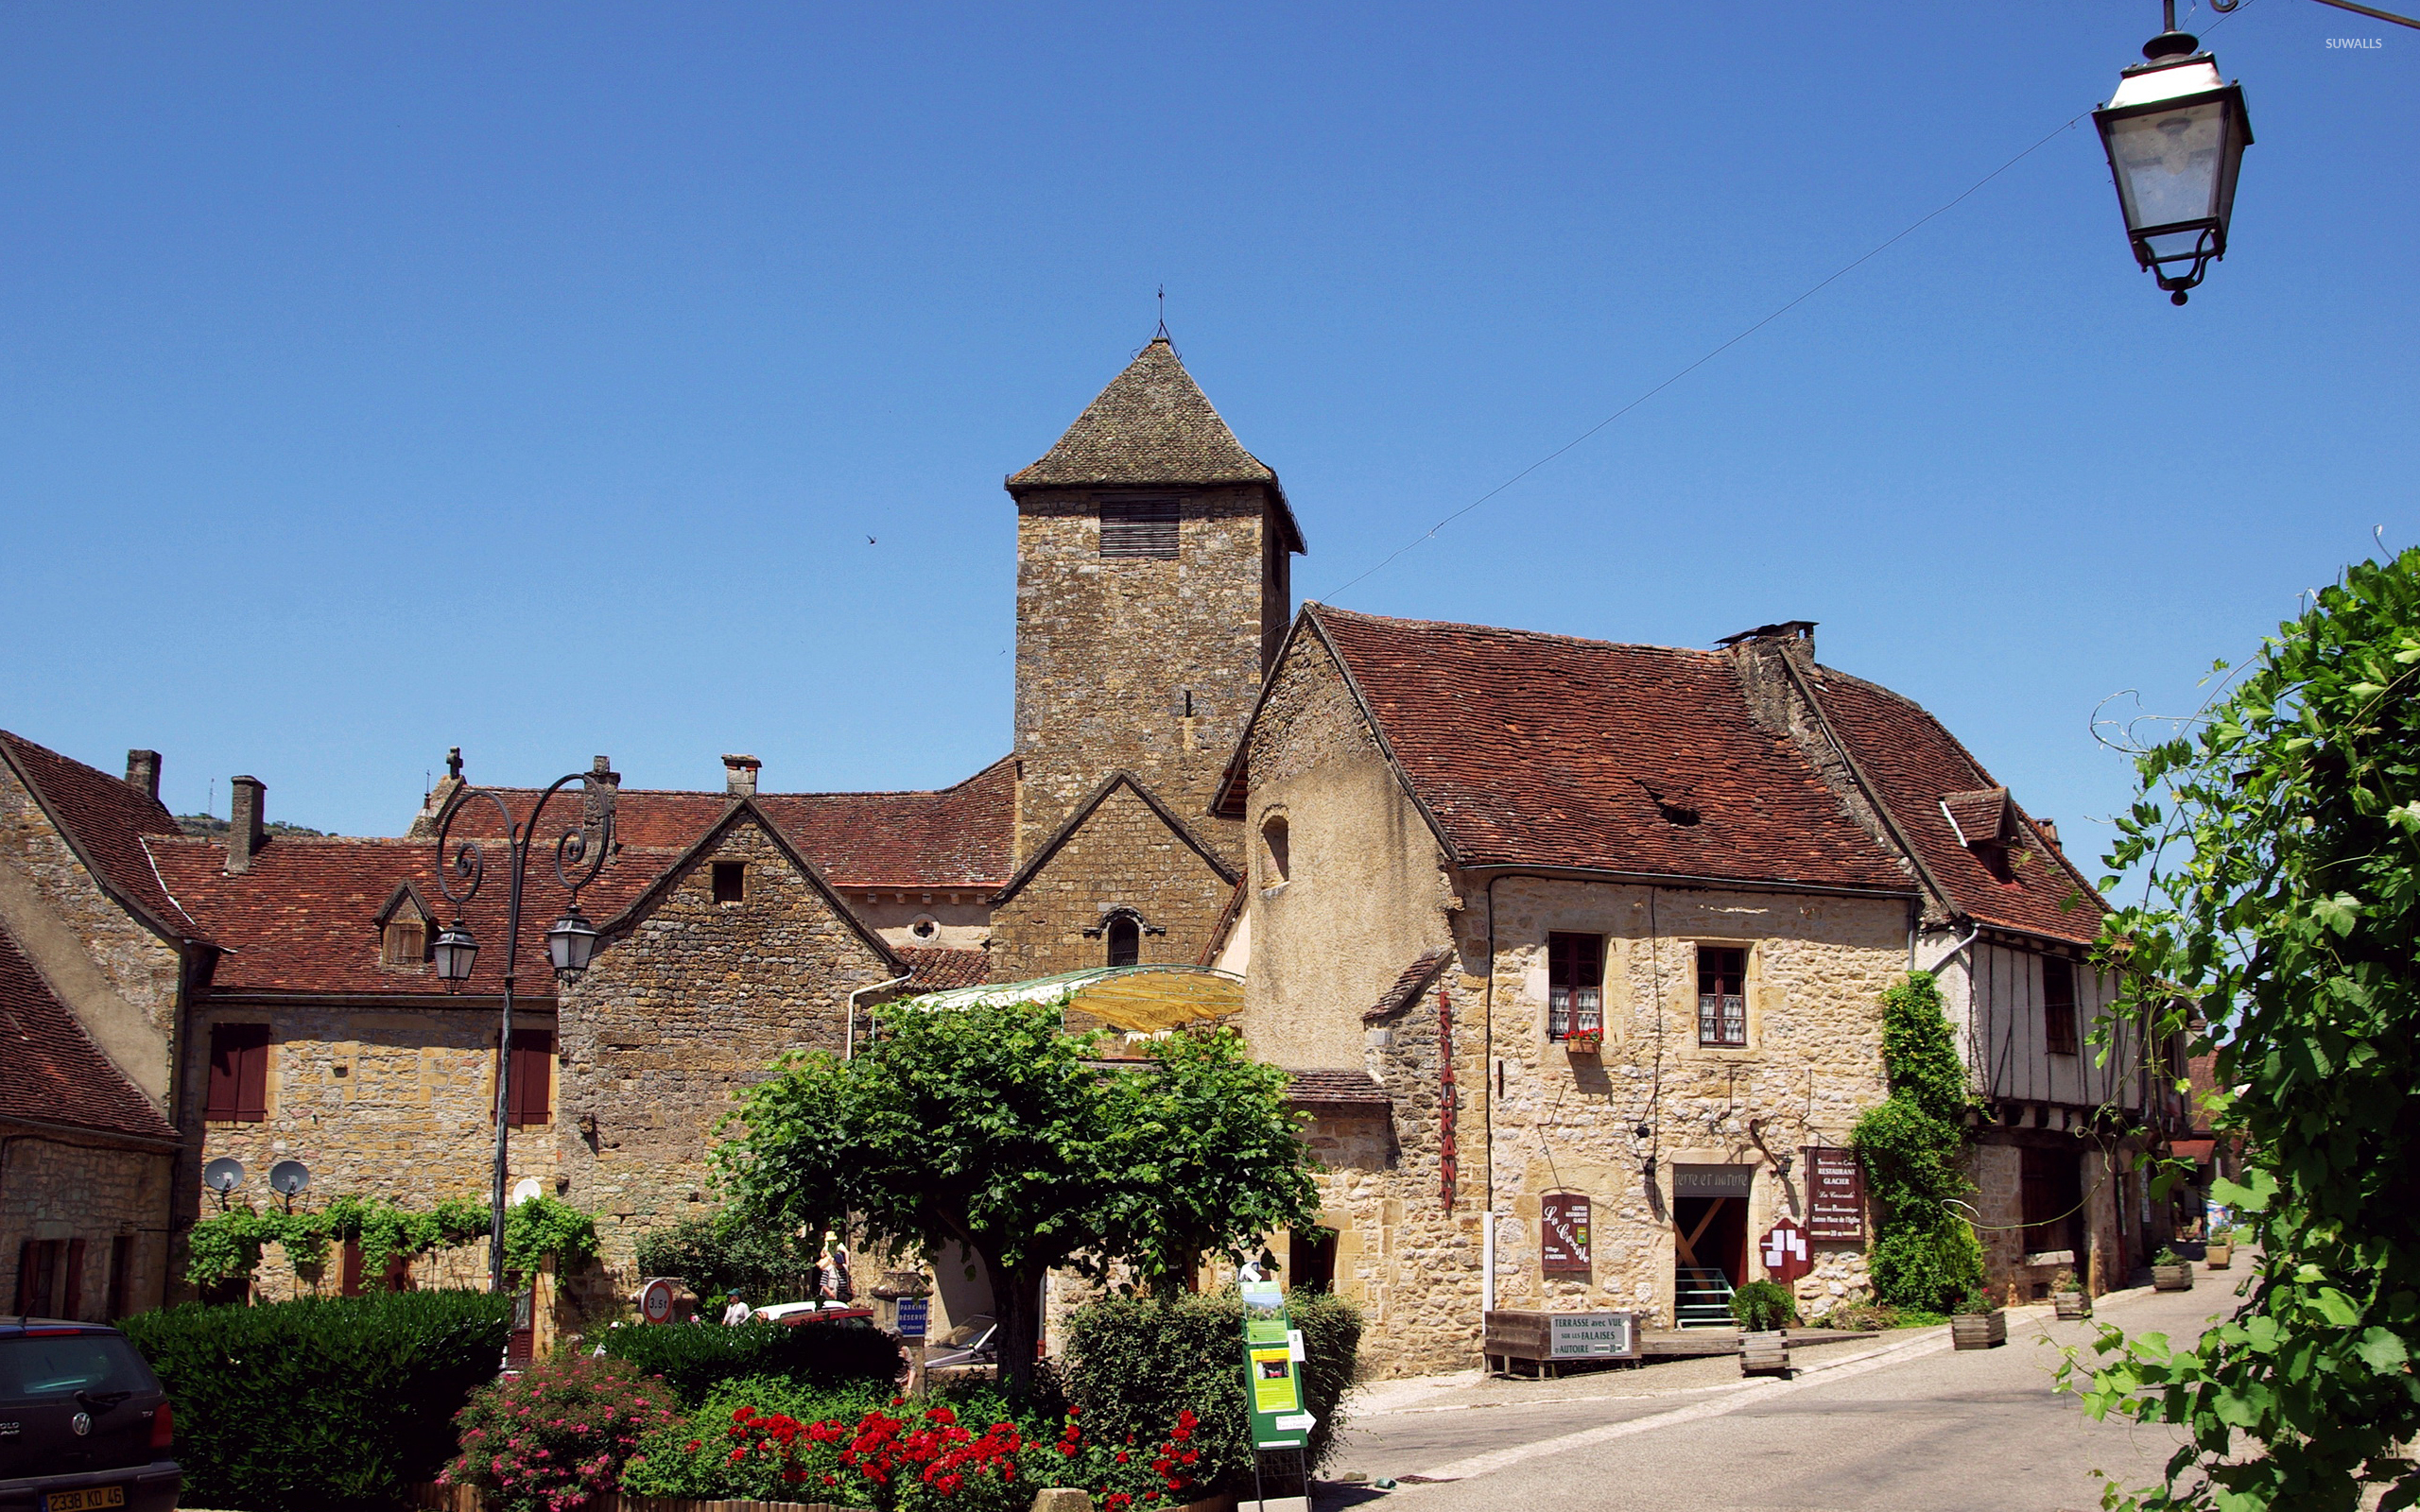 Old-Small-Town-In-France-53043-2560×1600-Wallpaper